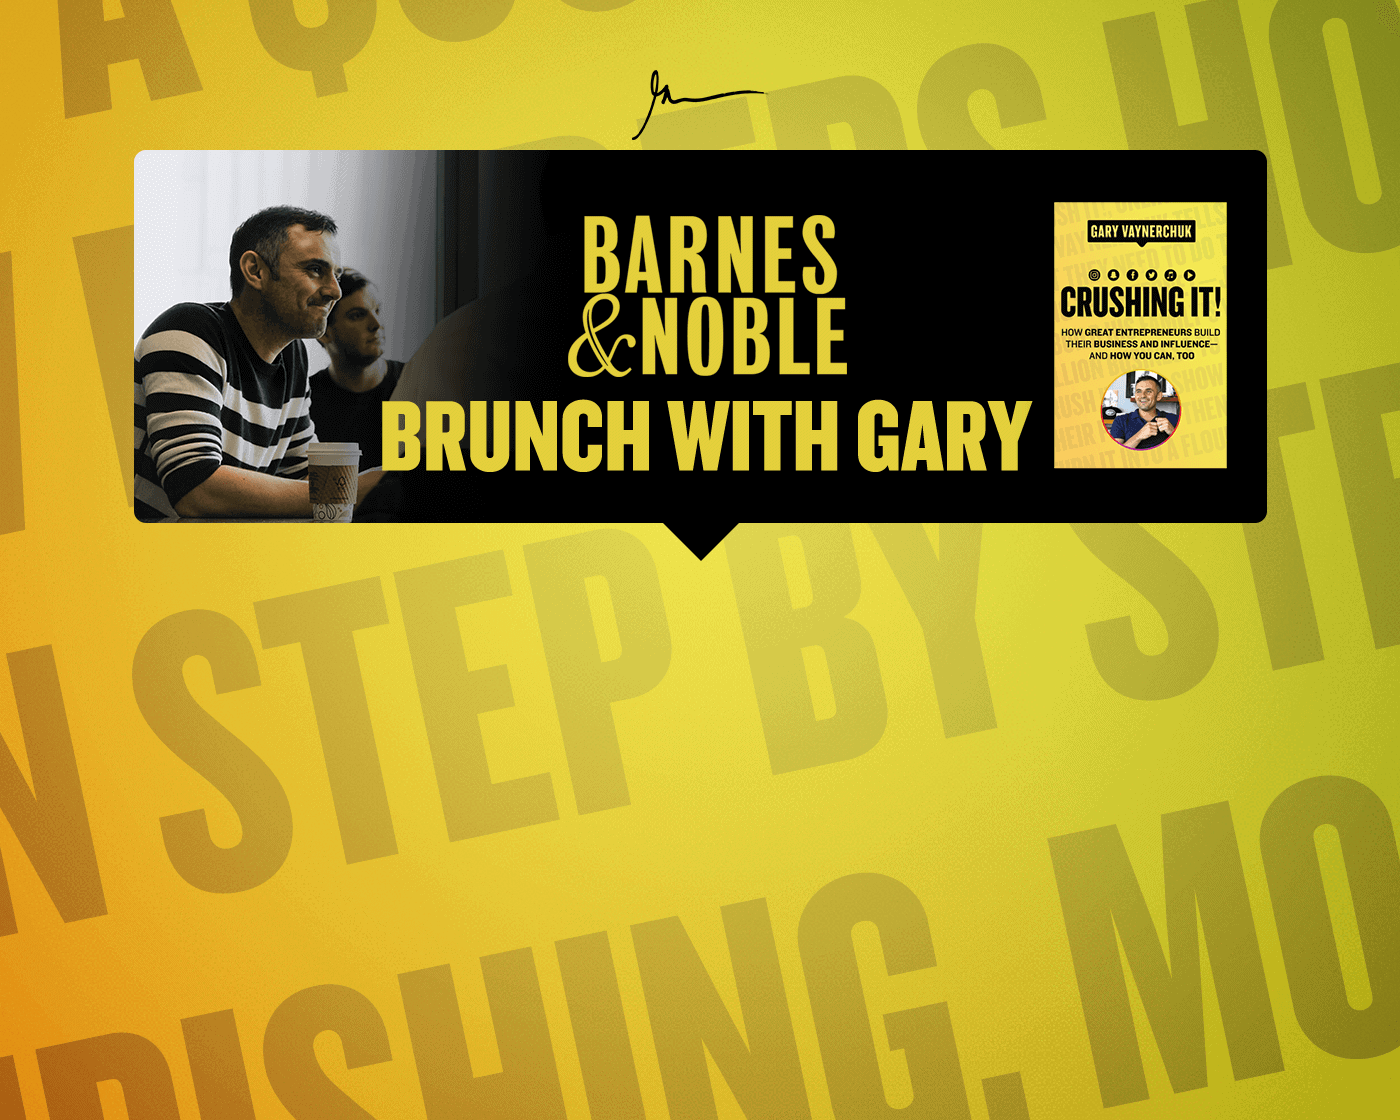 Join Me For a Special Crushing It Brunch! 8 Tickets Only